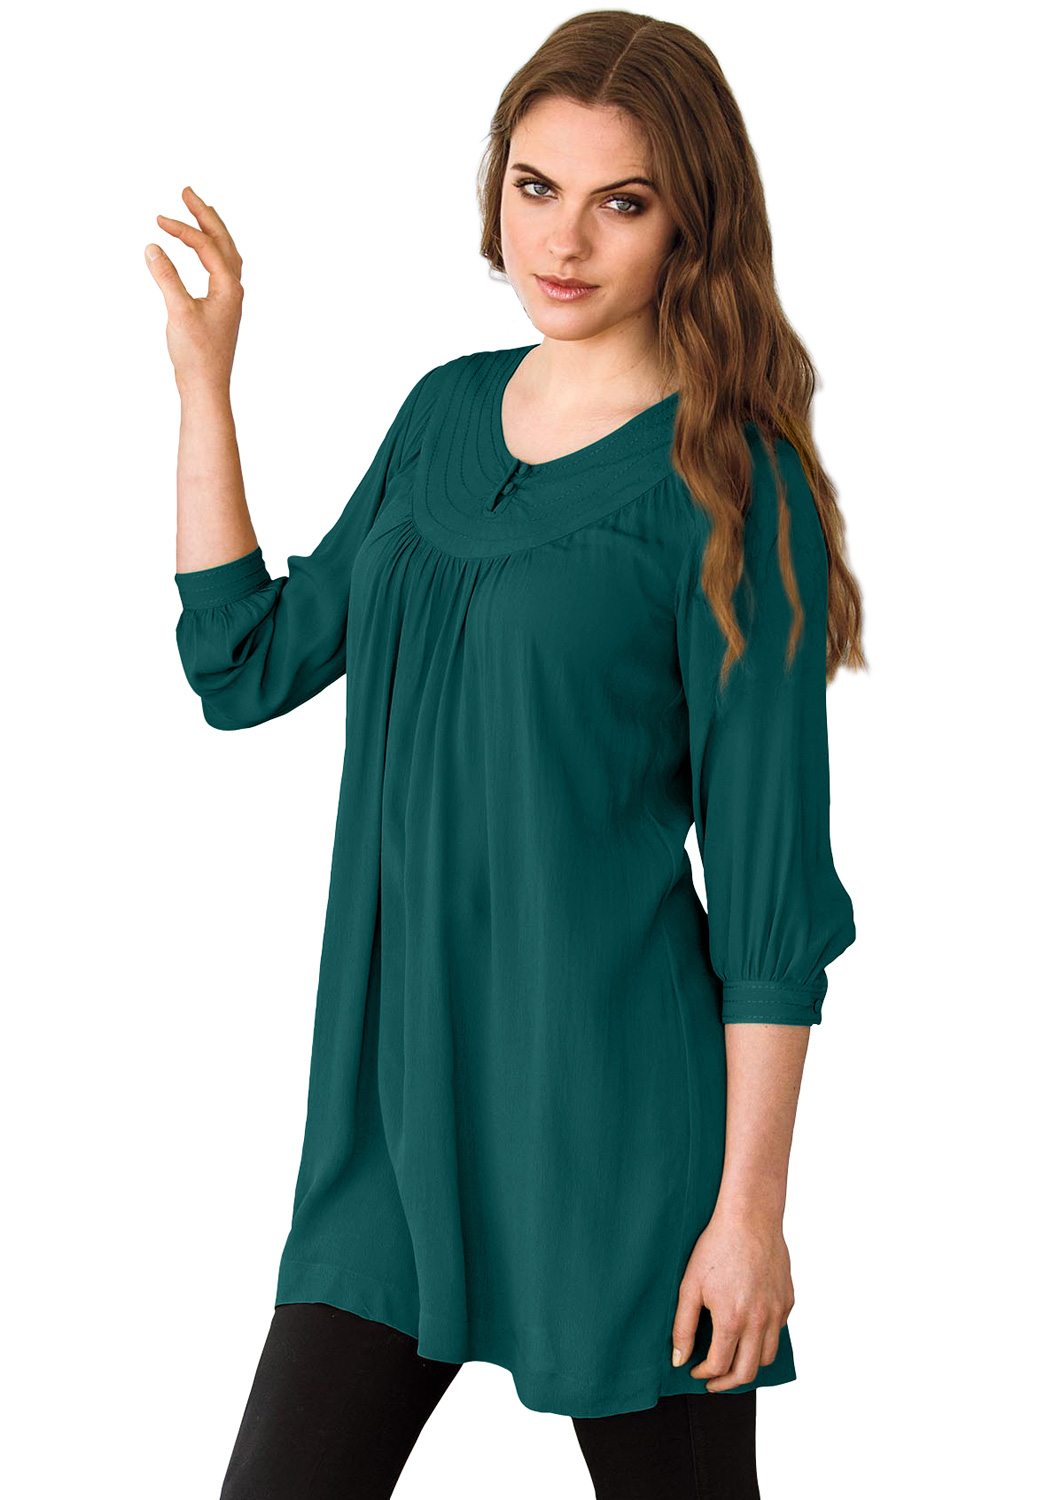 Stitch Neck 3/4 Sleeve Tunic by ellos®, EVERGREEN, hi-res